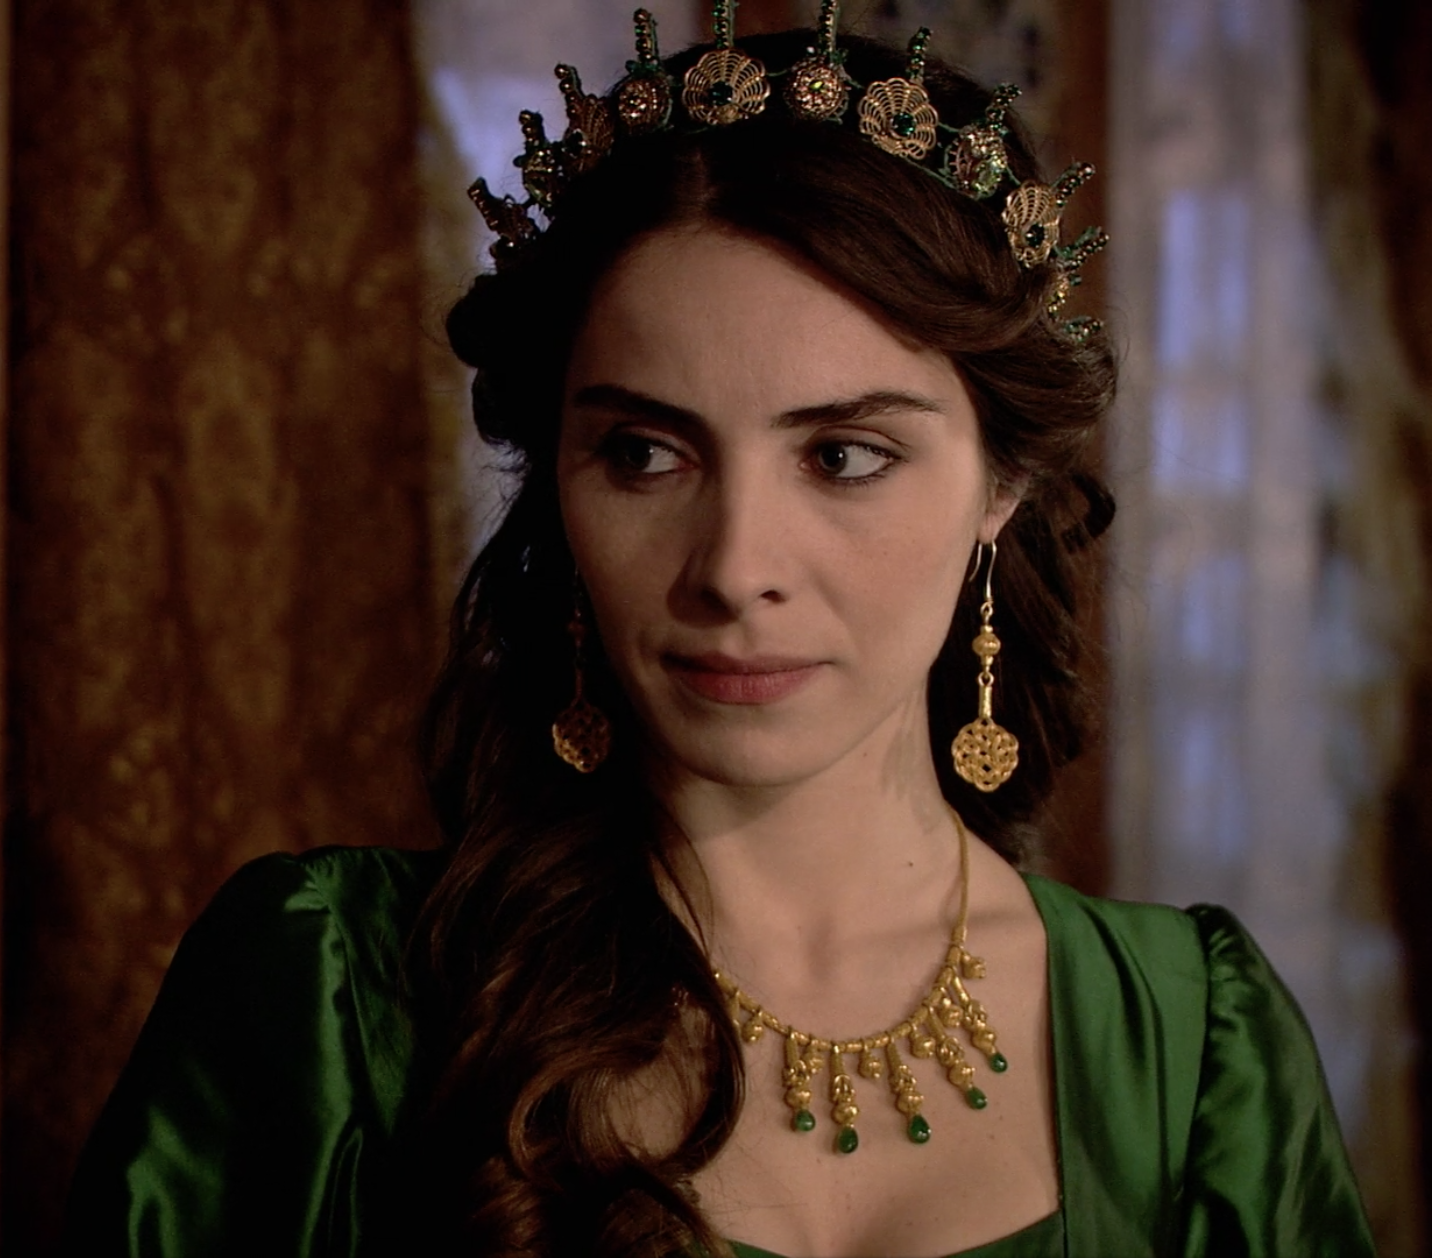 Mahidevran Sultan Victor Season 1 Episode 9 Beautiful One Magnificent Beautiful